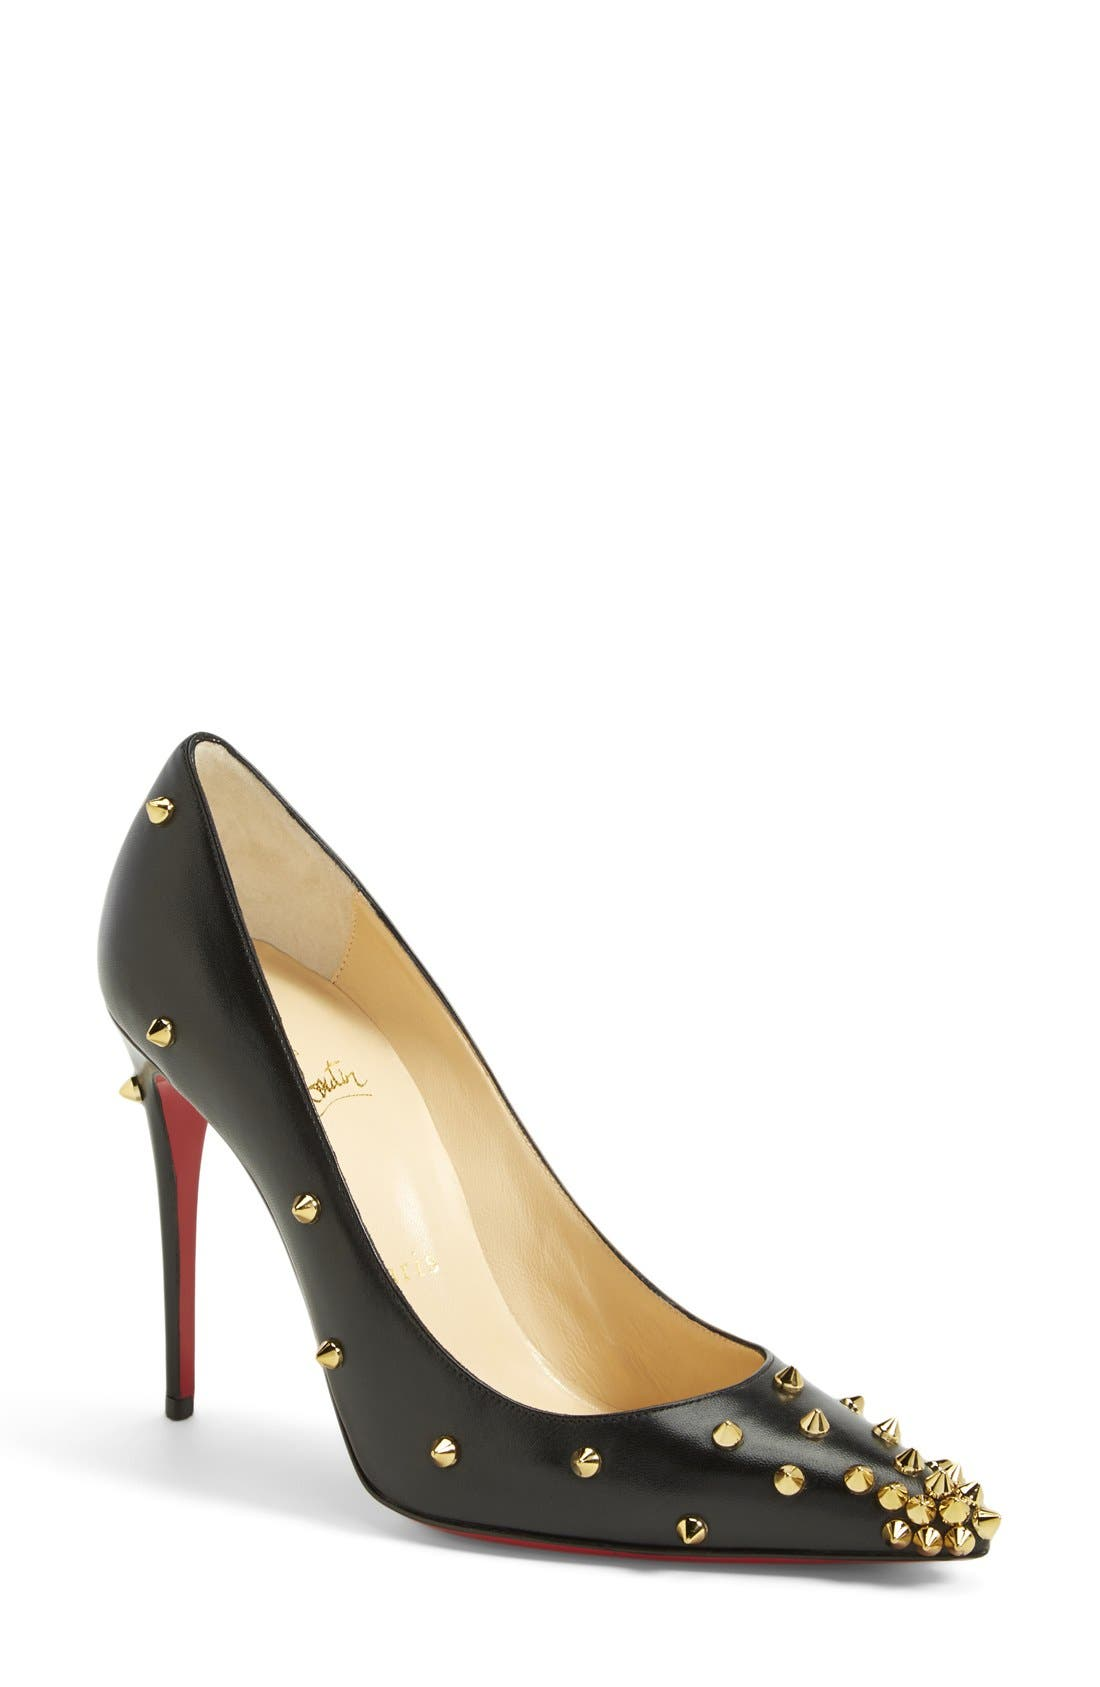 Main Image - Christian Louboutin 'Spike' Pointy Toe Pump